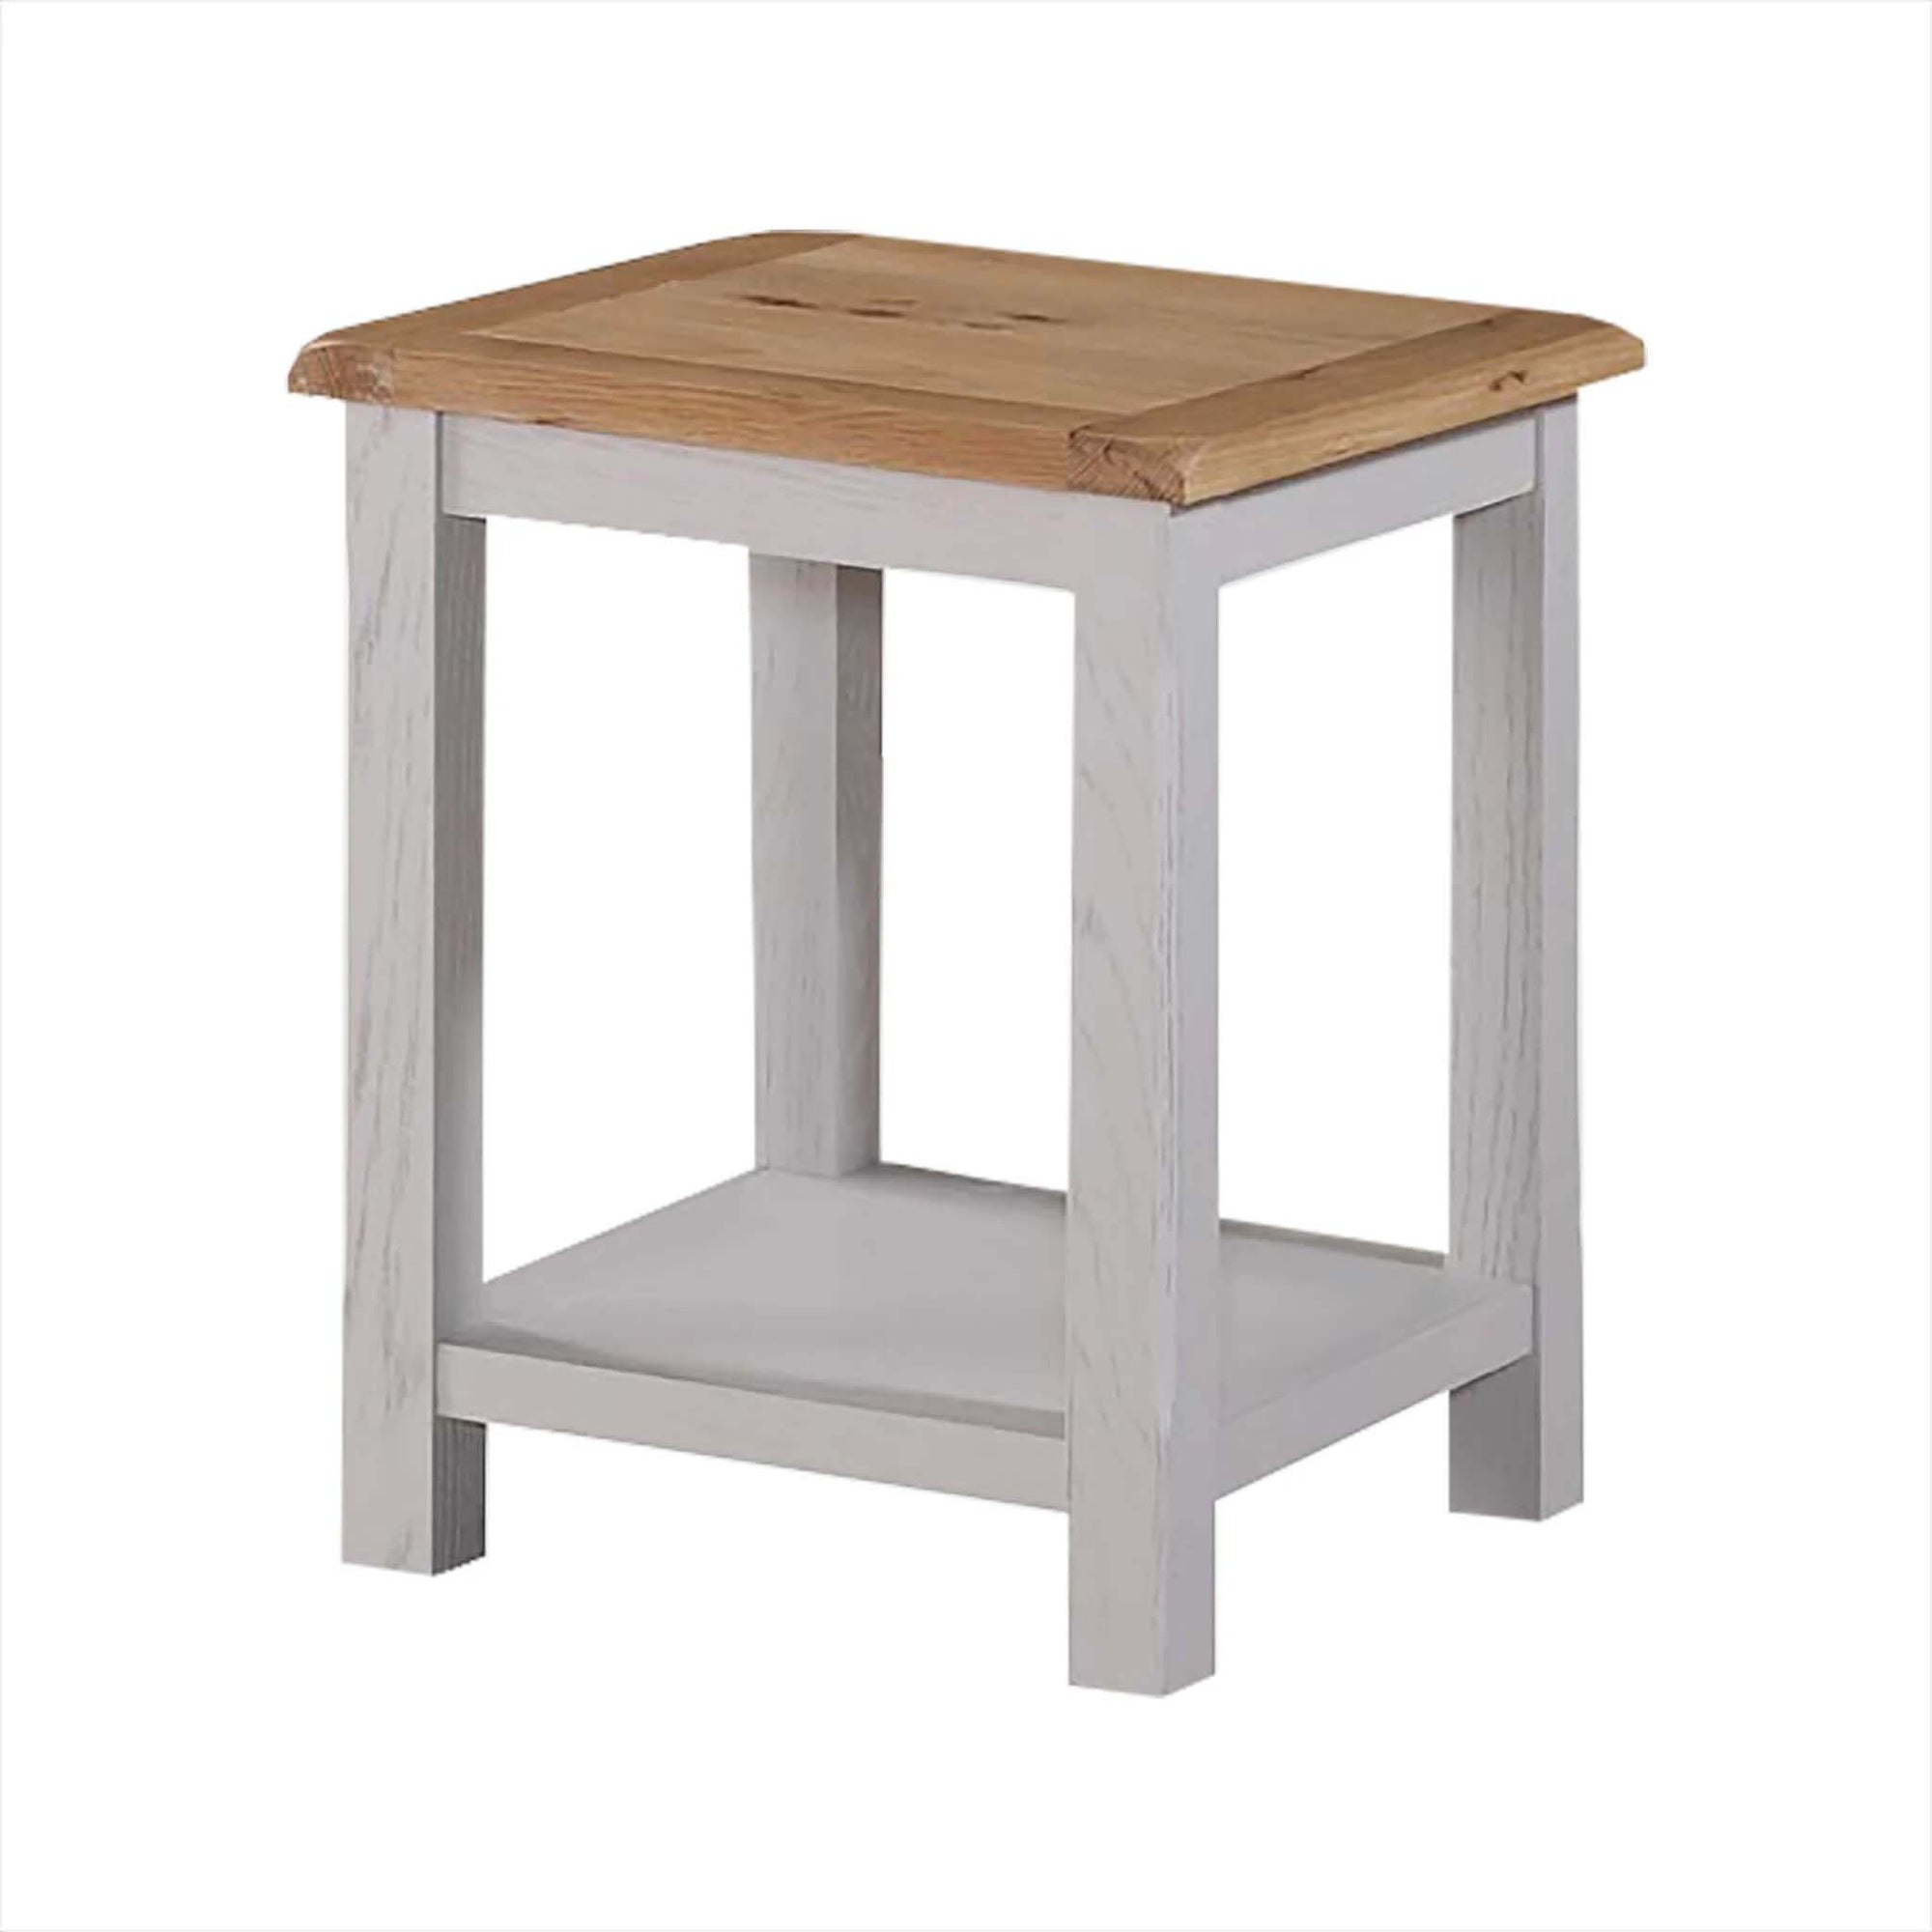 Kilmore Painted End Table by Roseland Furniture